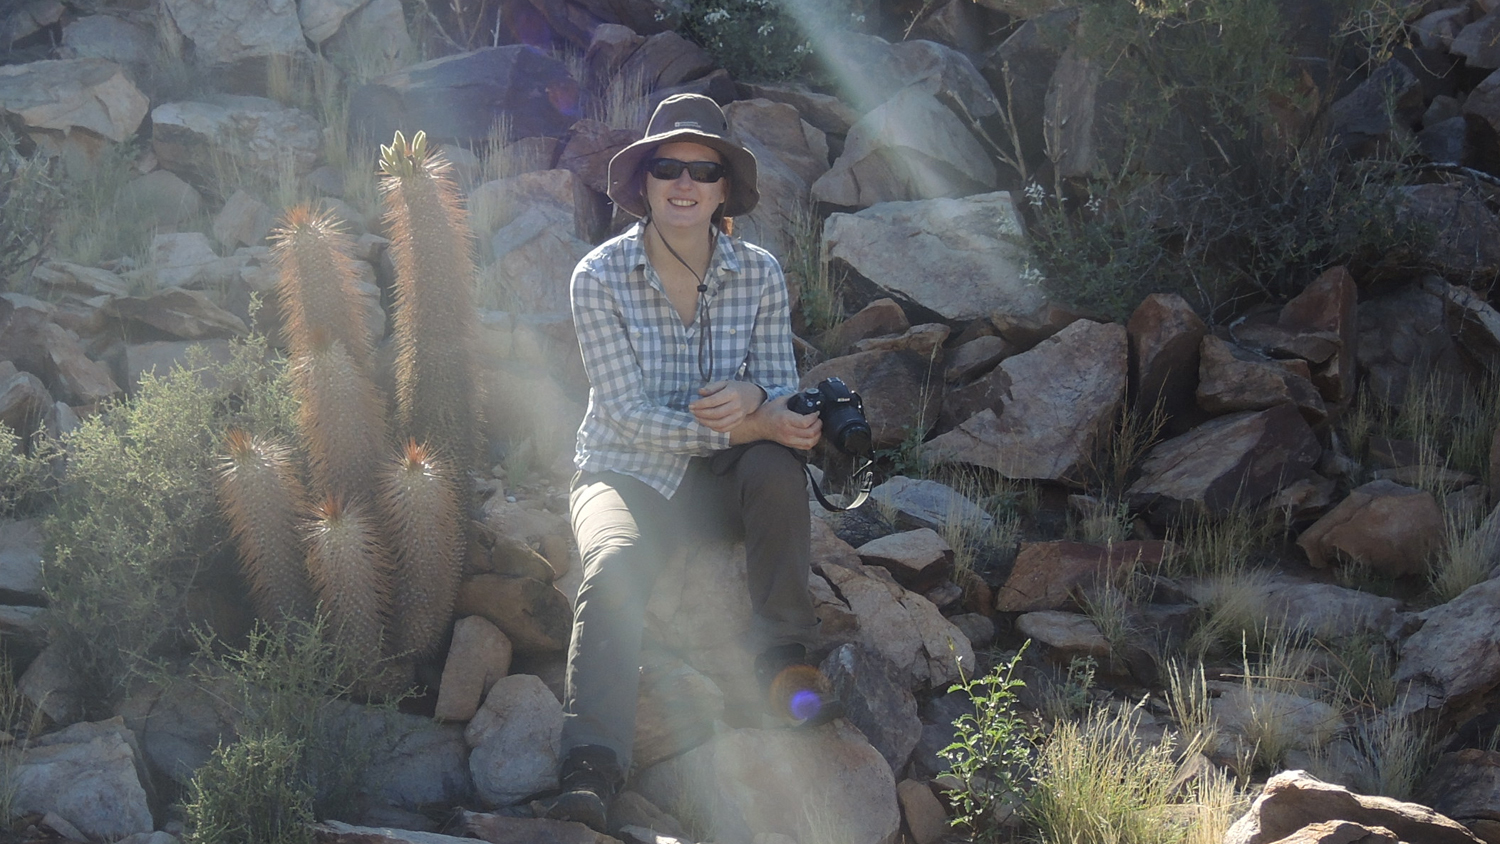 South Africa: Collecting succulents in the Richtersveld desert (image supplied by Dr Olwen Grace)